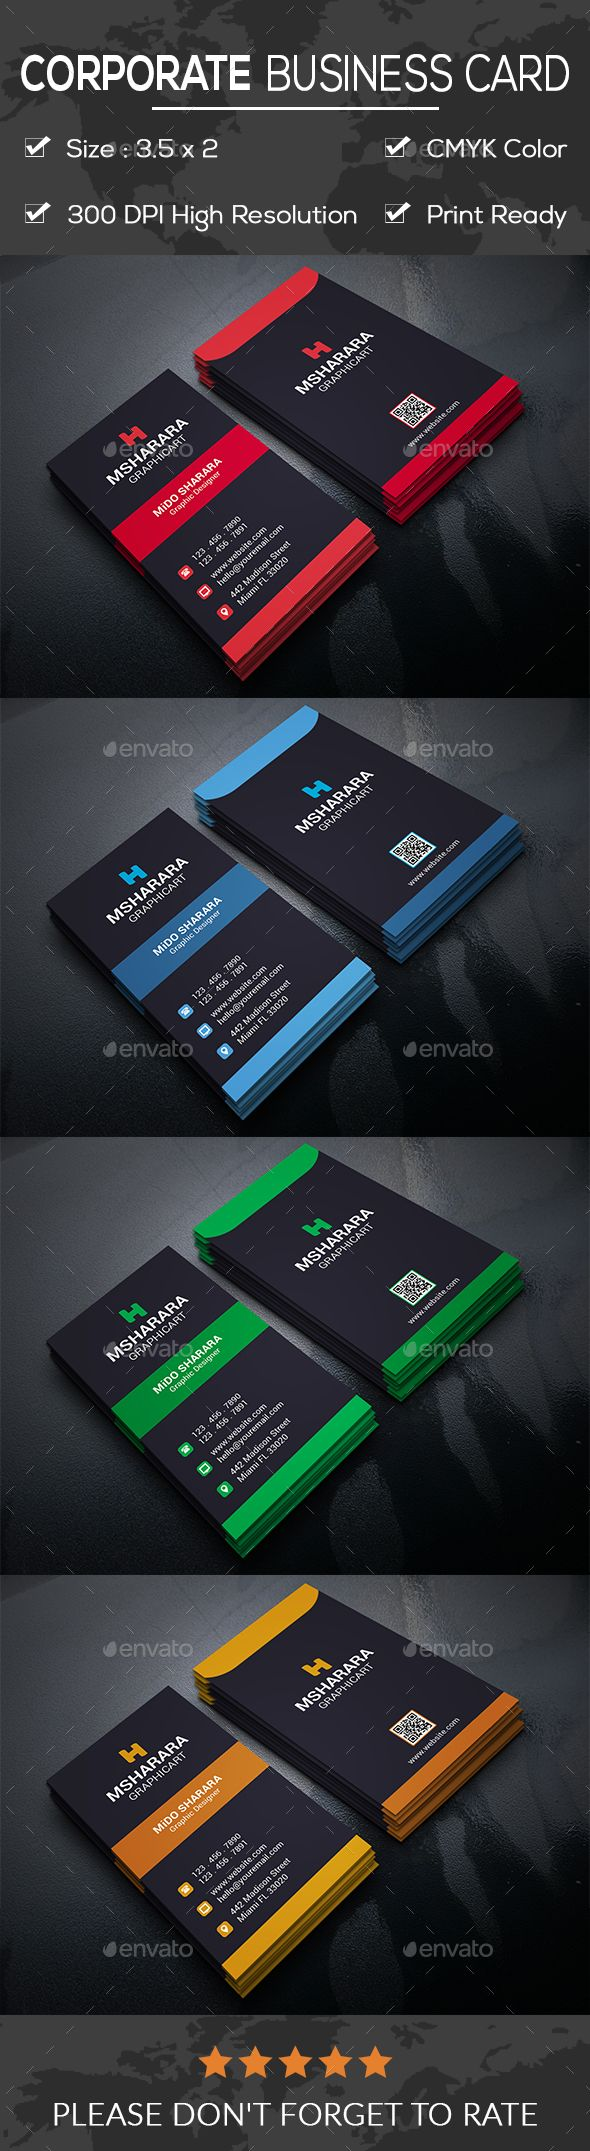 Corporate business card visita reheart Gallery